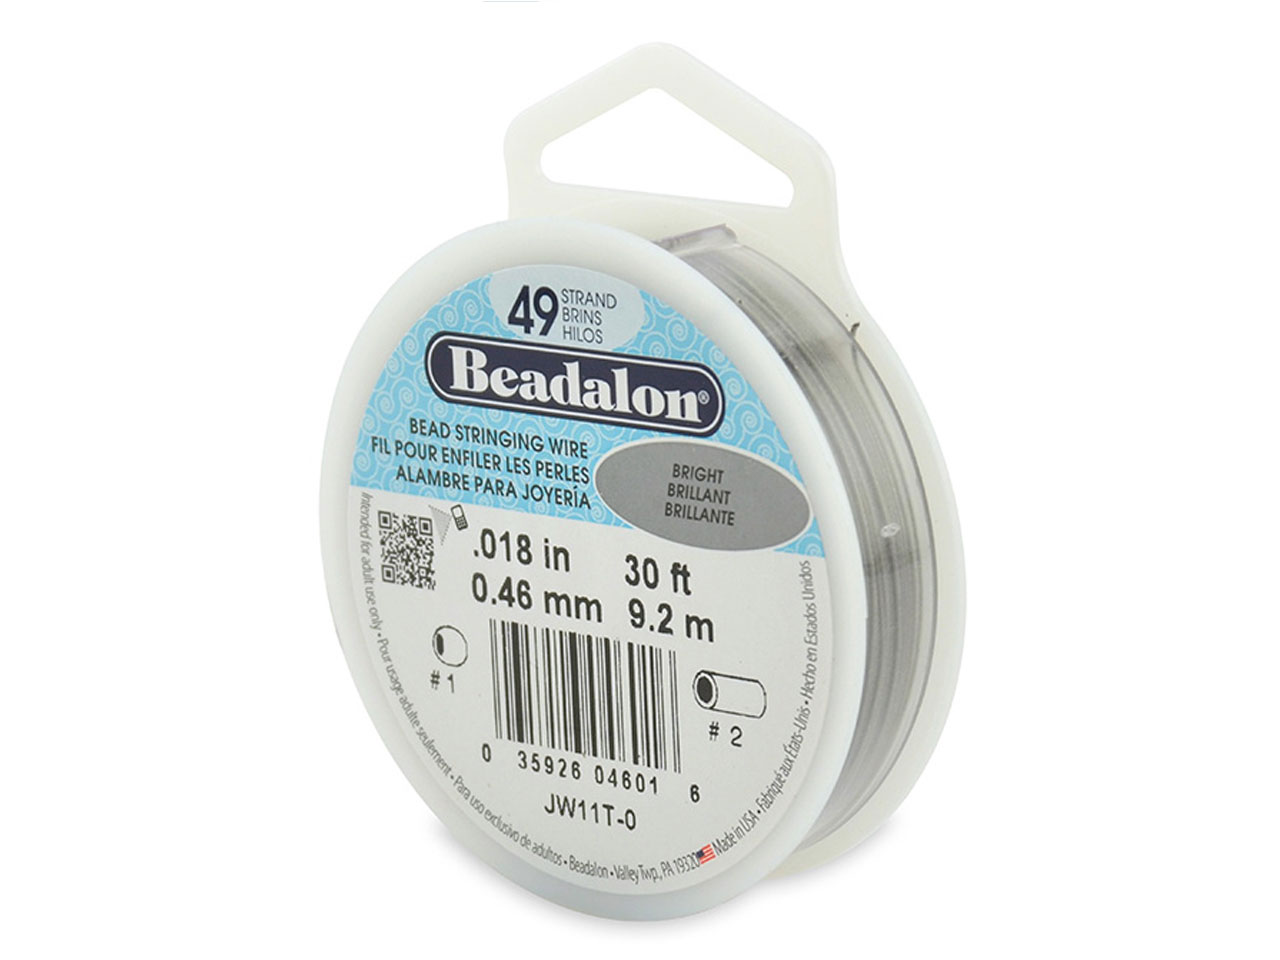 Beadalon 49 Strand Bright 0.46mm X 9.2m Wire